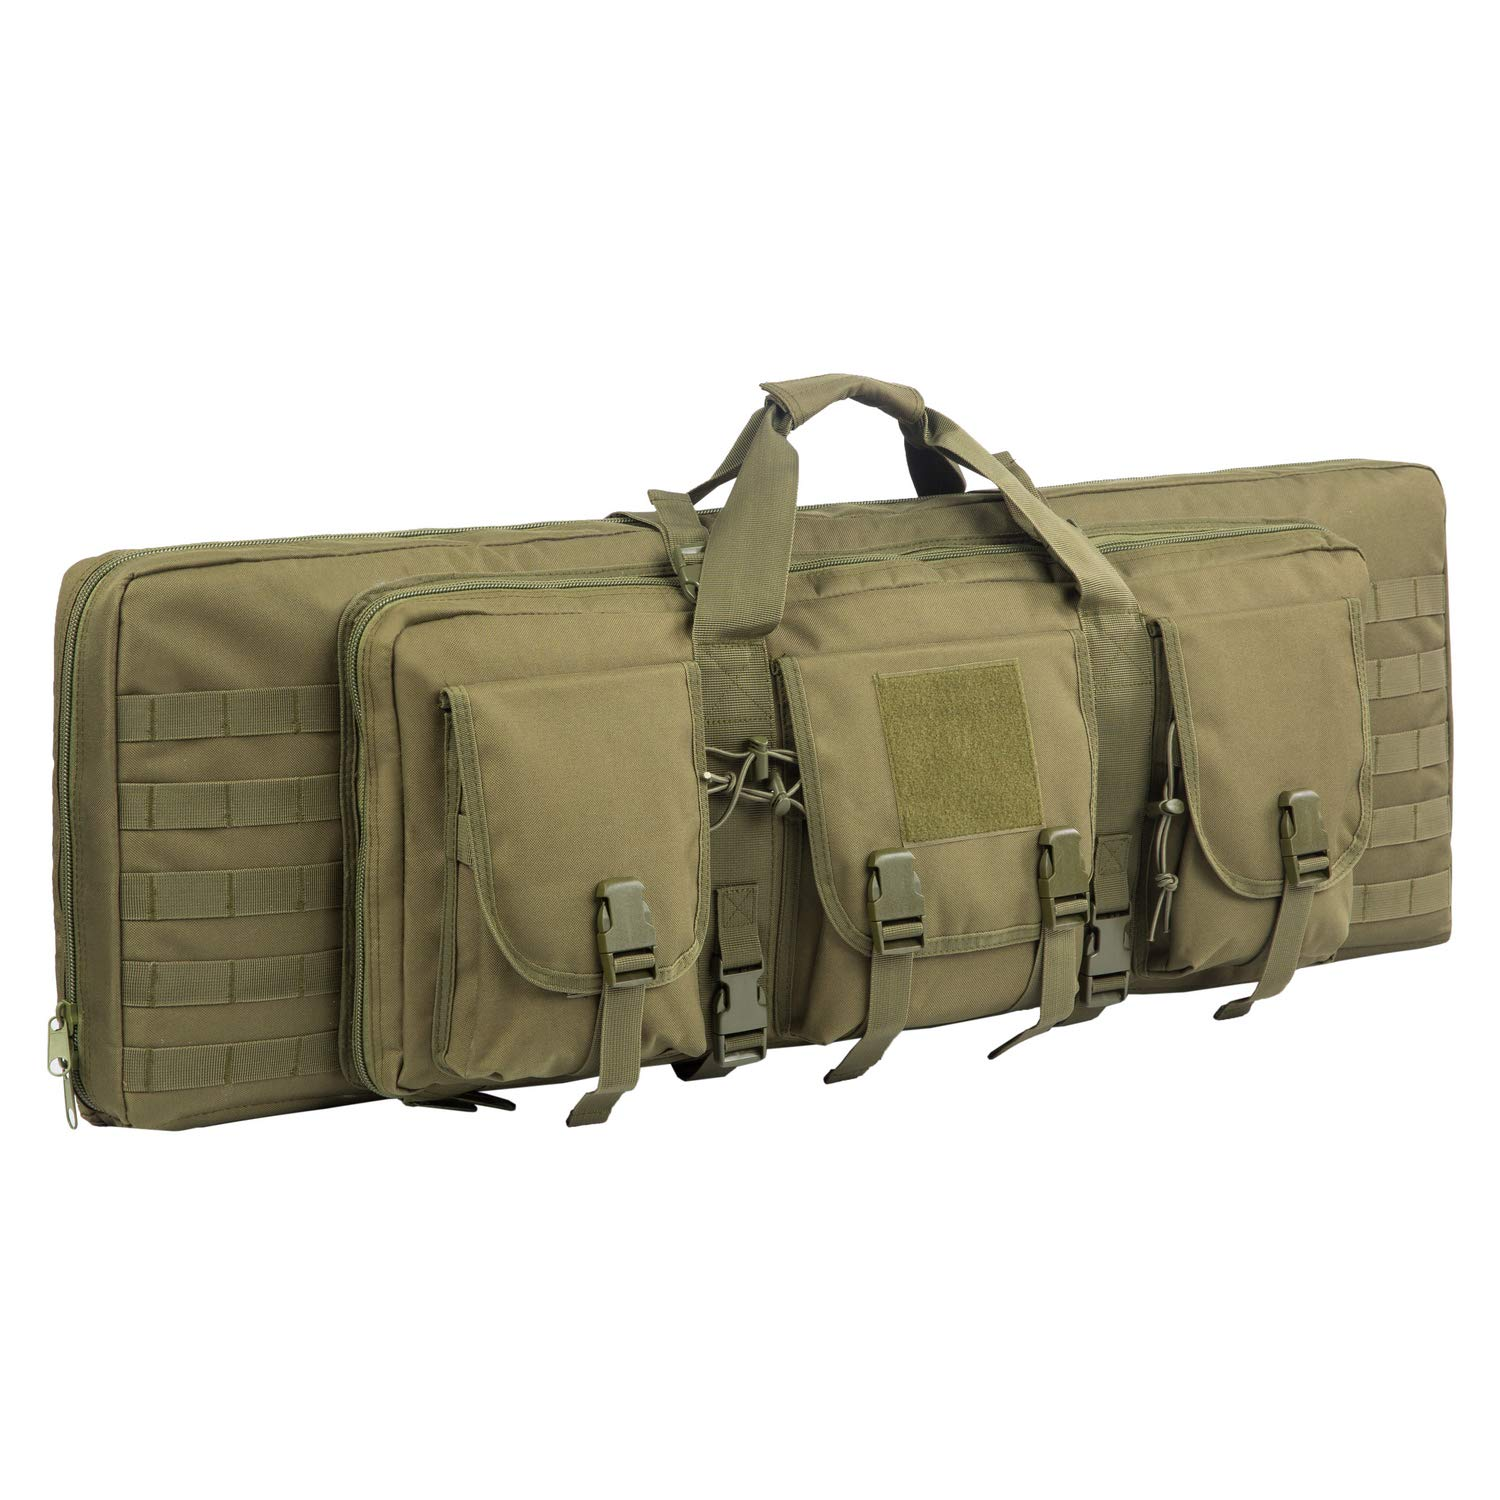 WolfWarriorX Double Long Rifle Gun Case Bag Tactical Carbine Cases Water Dust Resistant Firearm Shotgun Bag Outdoor MOLLE Hunting Shooting Storage Transport, Available in 38'' 42''  (Green, 38inch) by WolfWarriorX